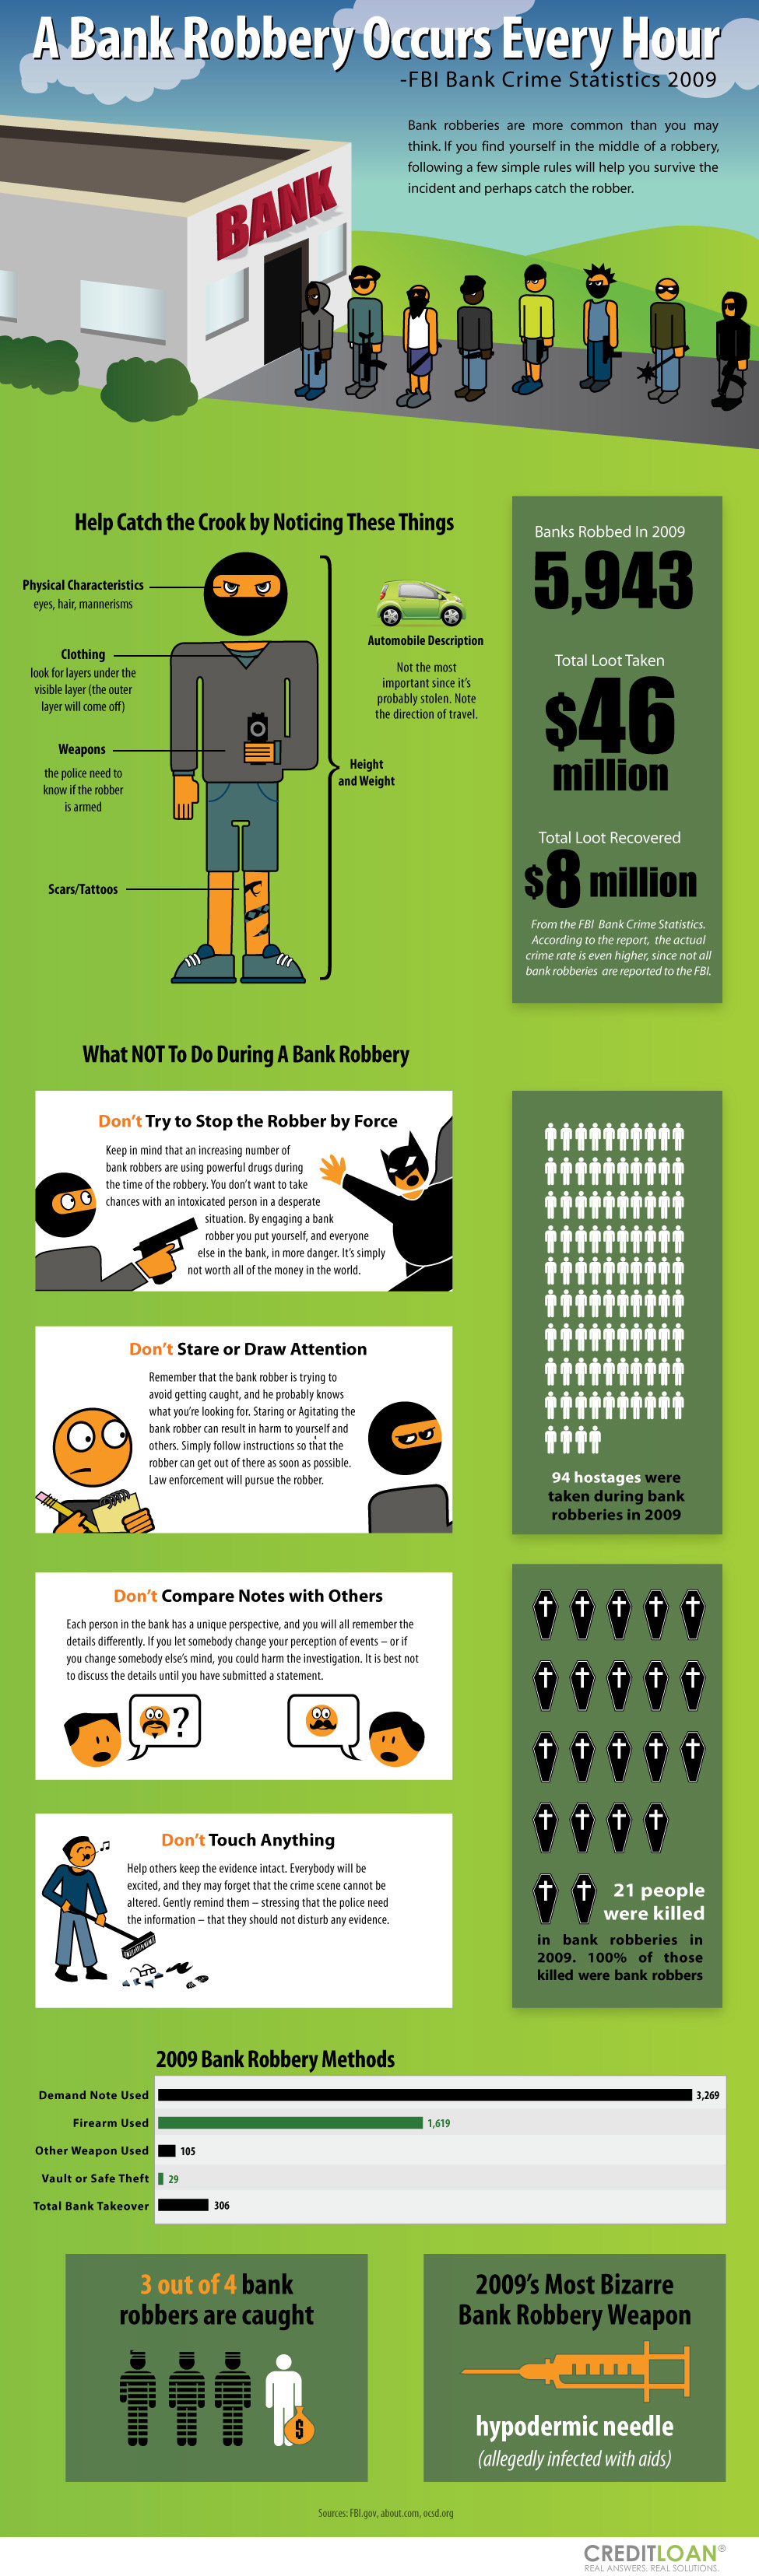 Facts about Bank Robberies